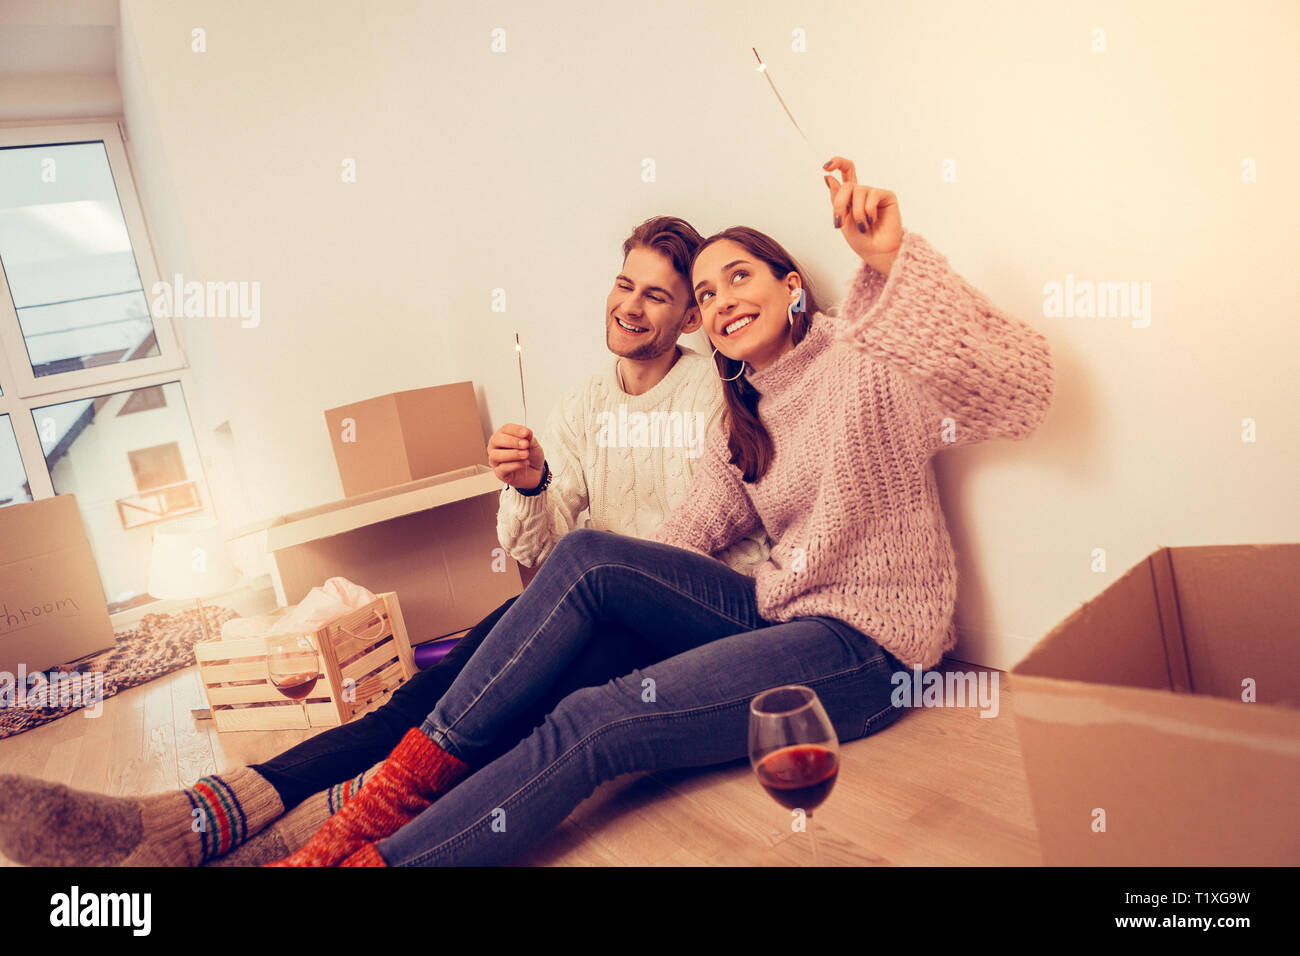 Couple celebrating their moving drinking wine and firing sparklers - Stock Image